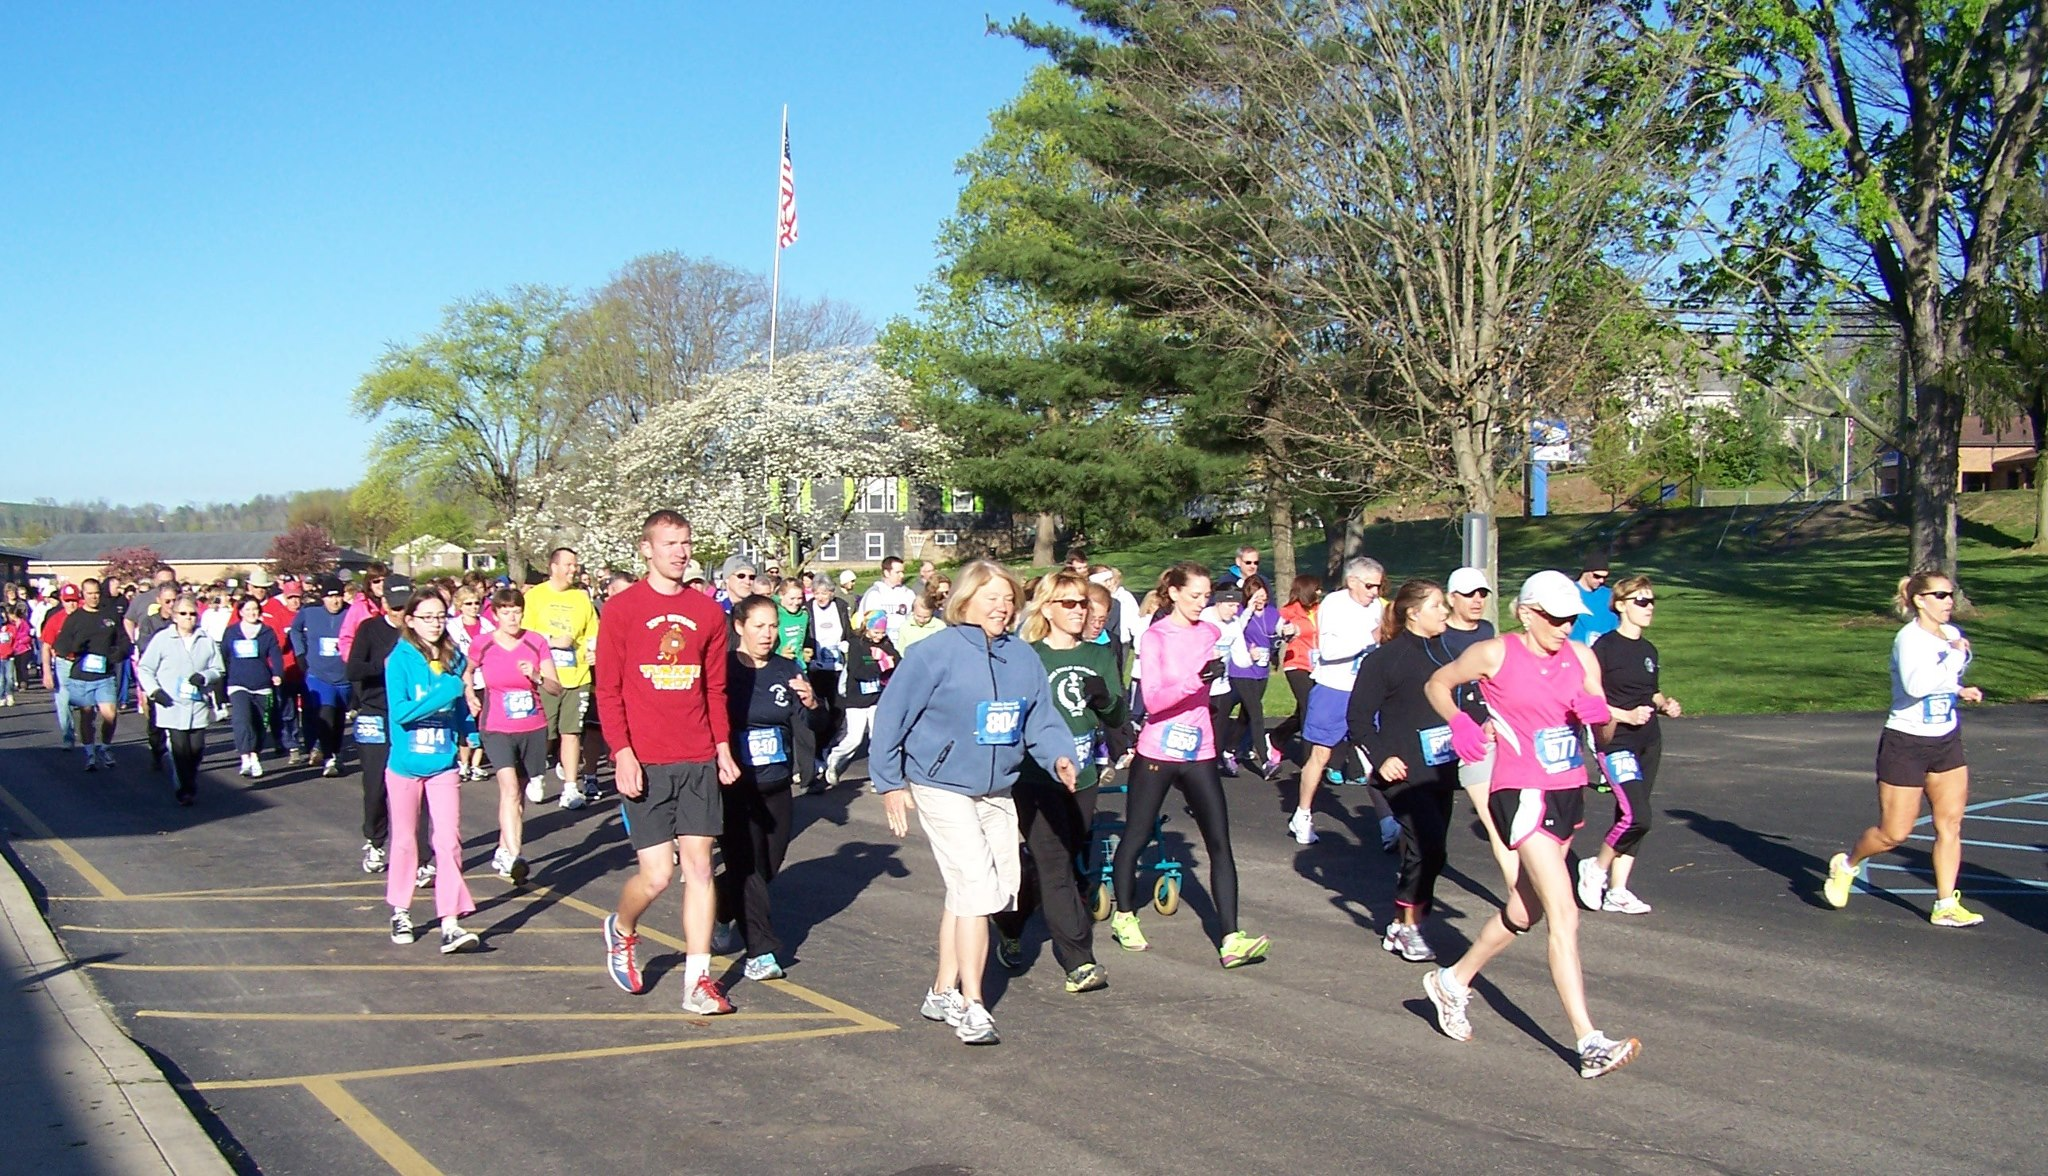 images.raceentry.com/infopages/beverly-waterford-bunny-hop-5k-runwalk-infopages-2266.jpg